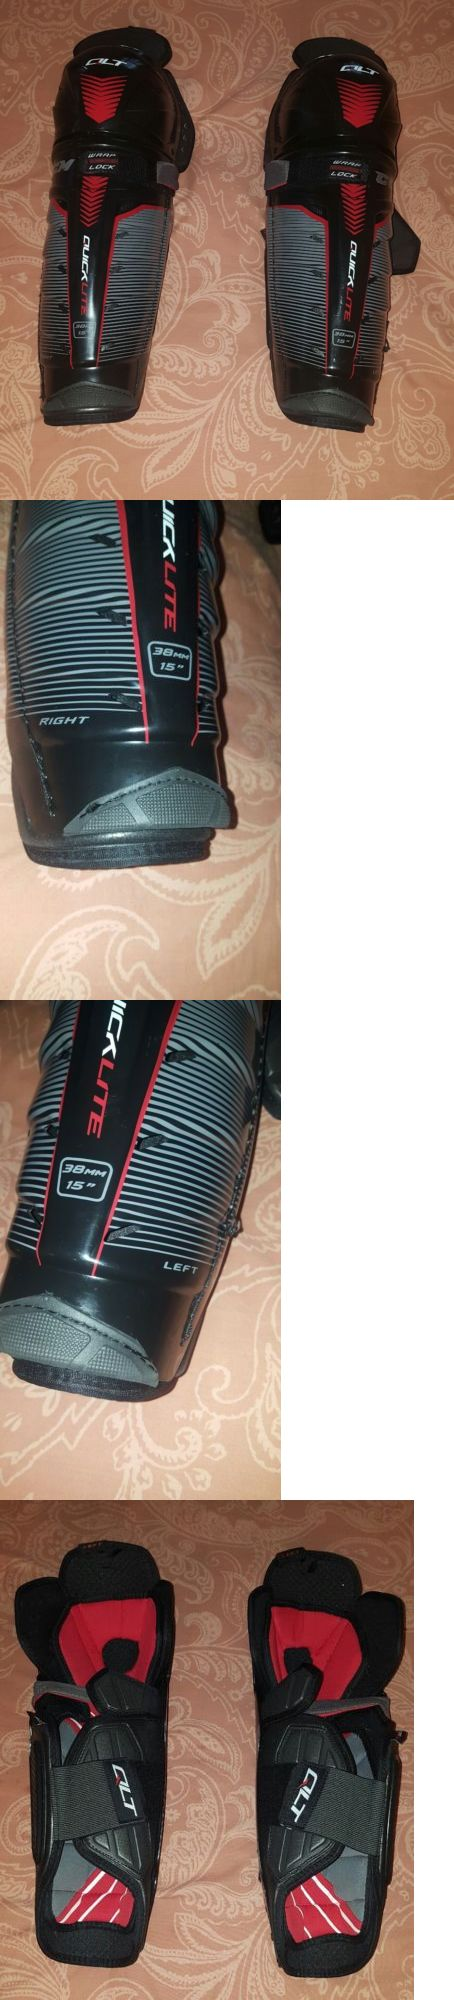 Pads and Guards 20856: Ccm Quicklite Qlt Hockey Shin Guards Senior Size 15 38Mm -> BUY IT NOW ONLY: $124.99 on eBay!